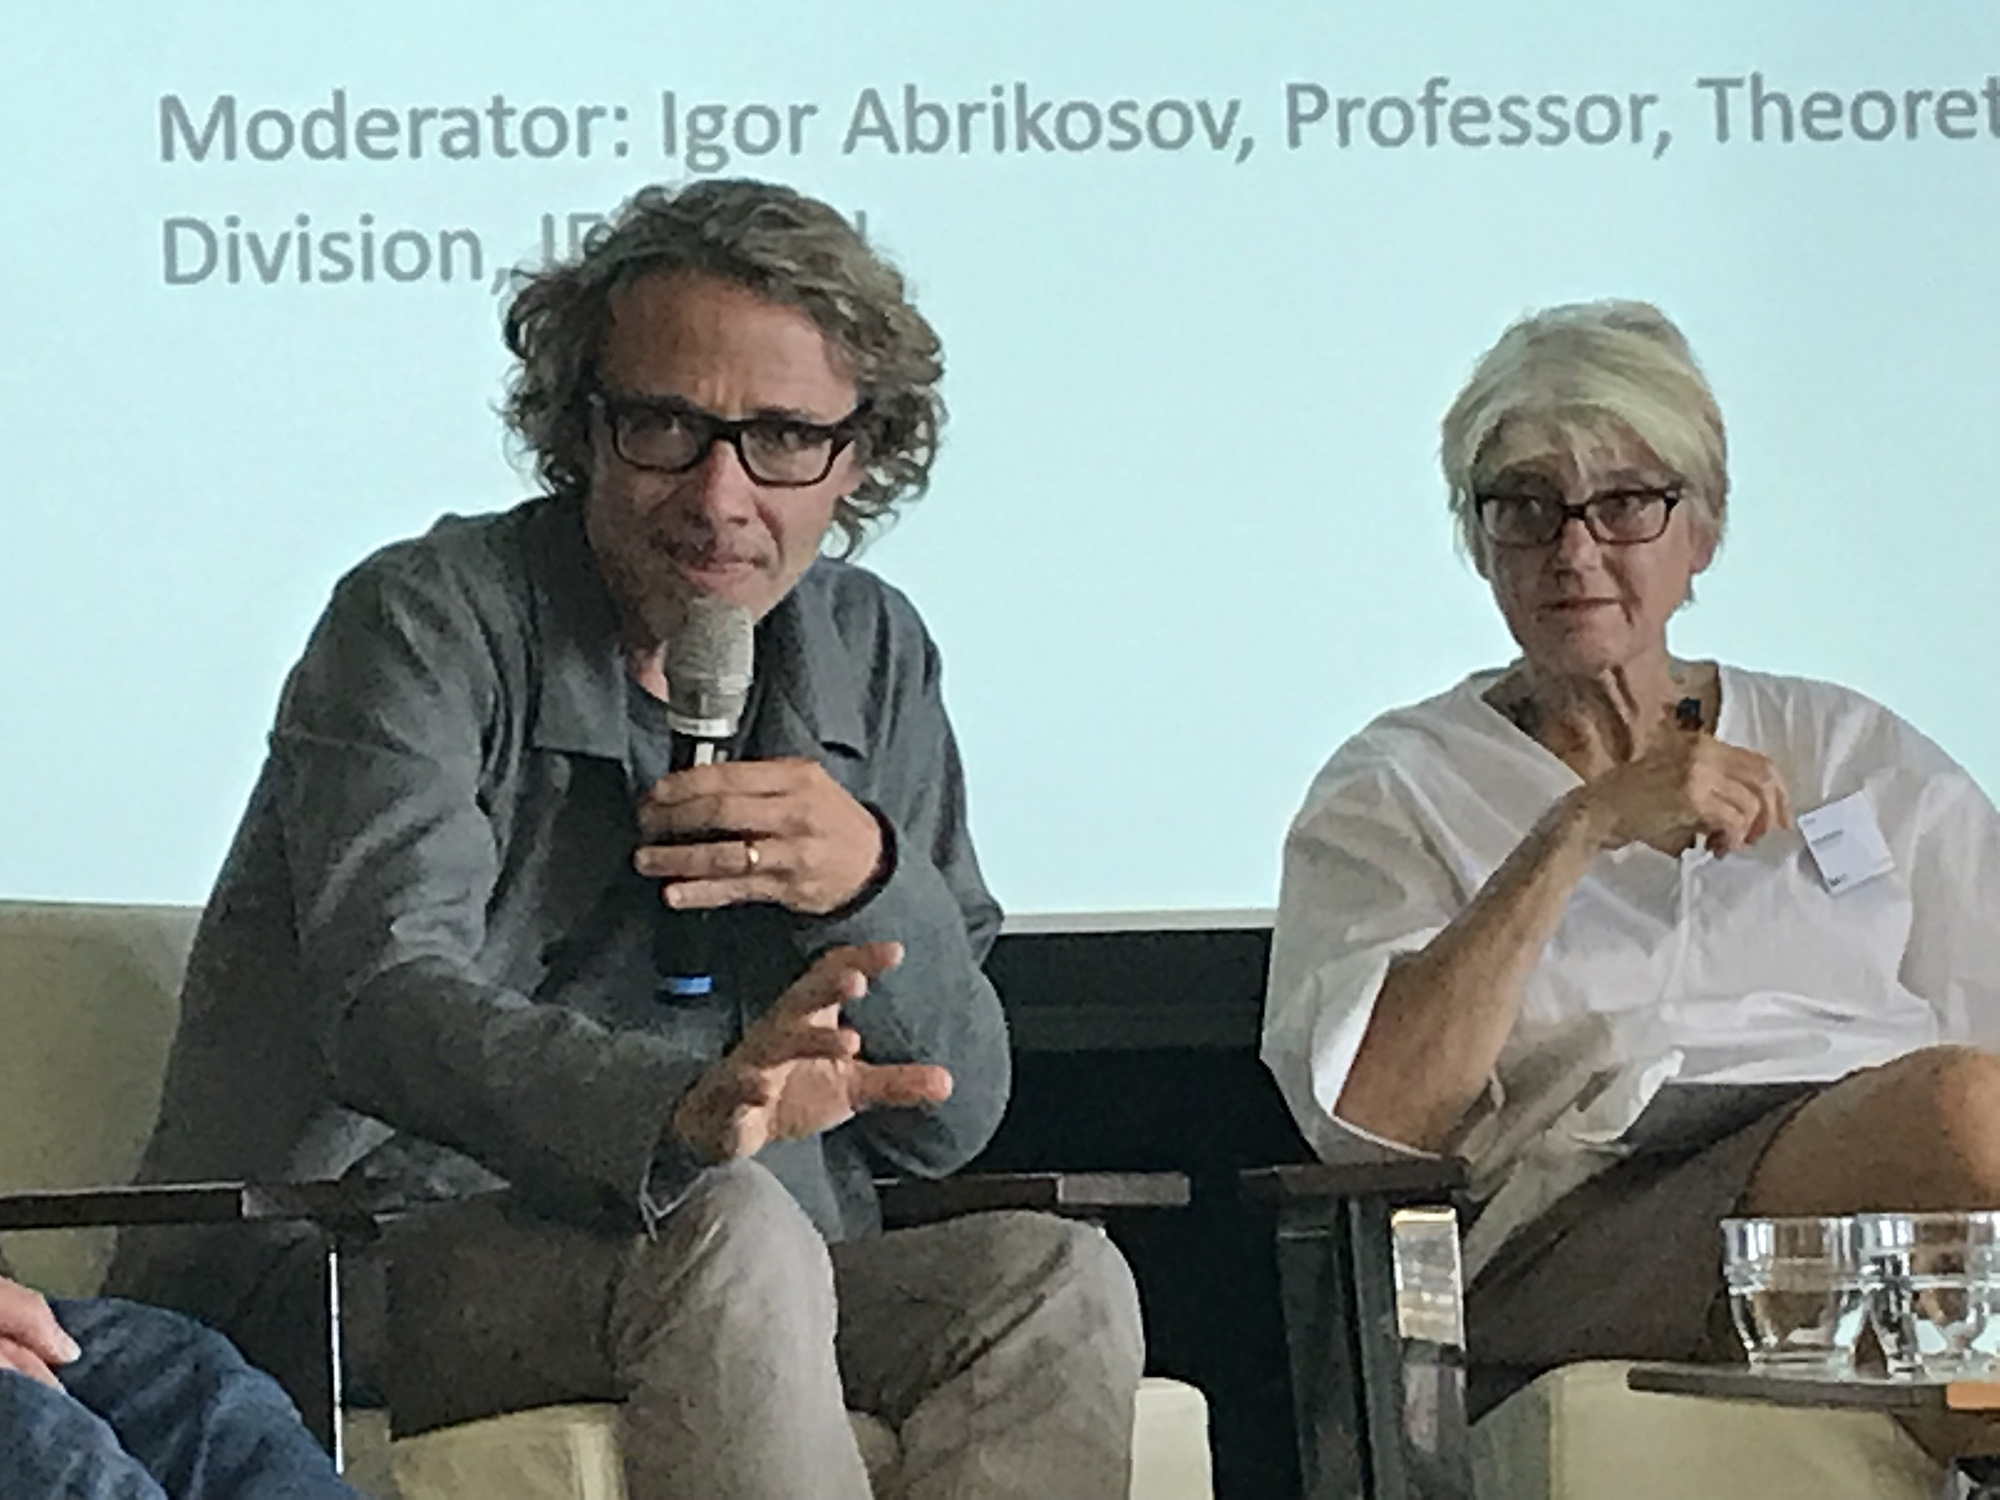 Fredrik Höök and Kersti Hermansson